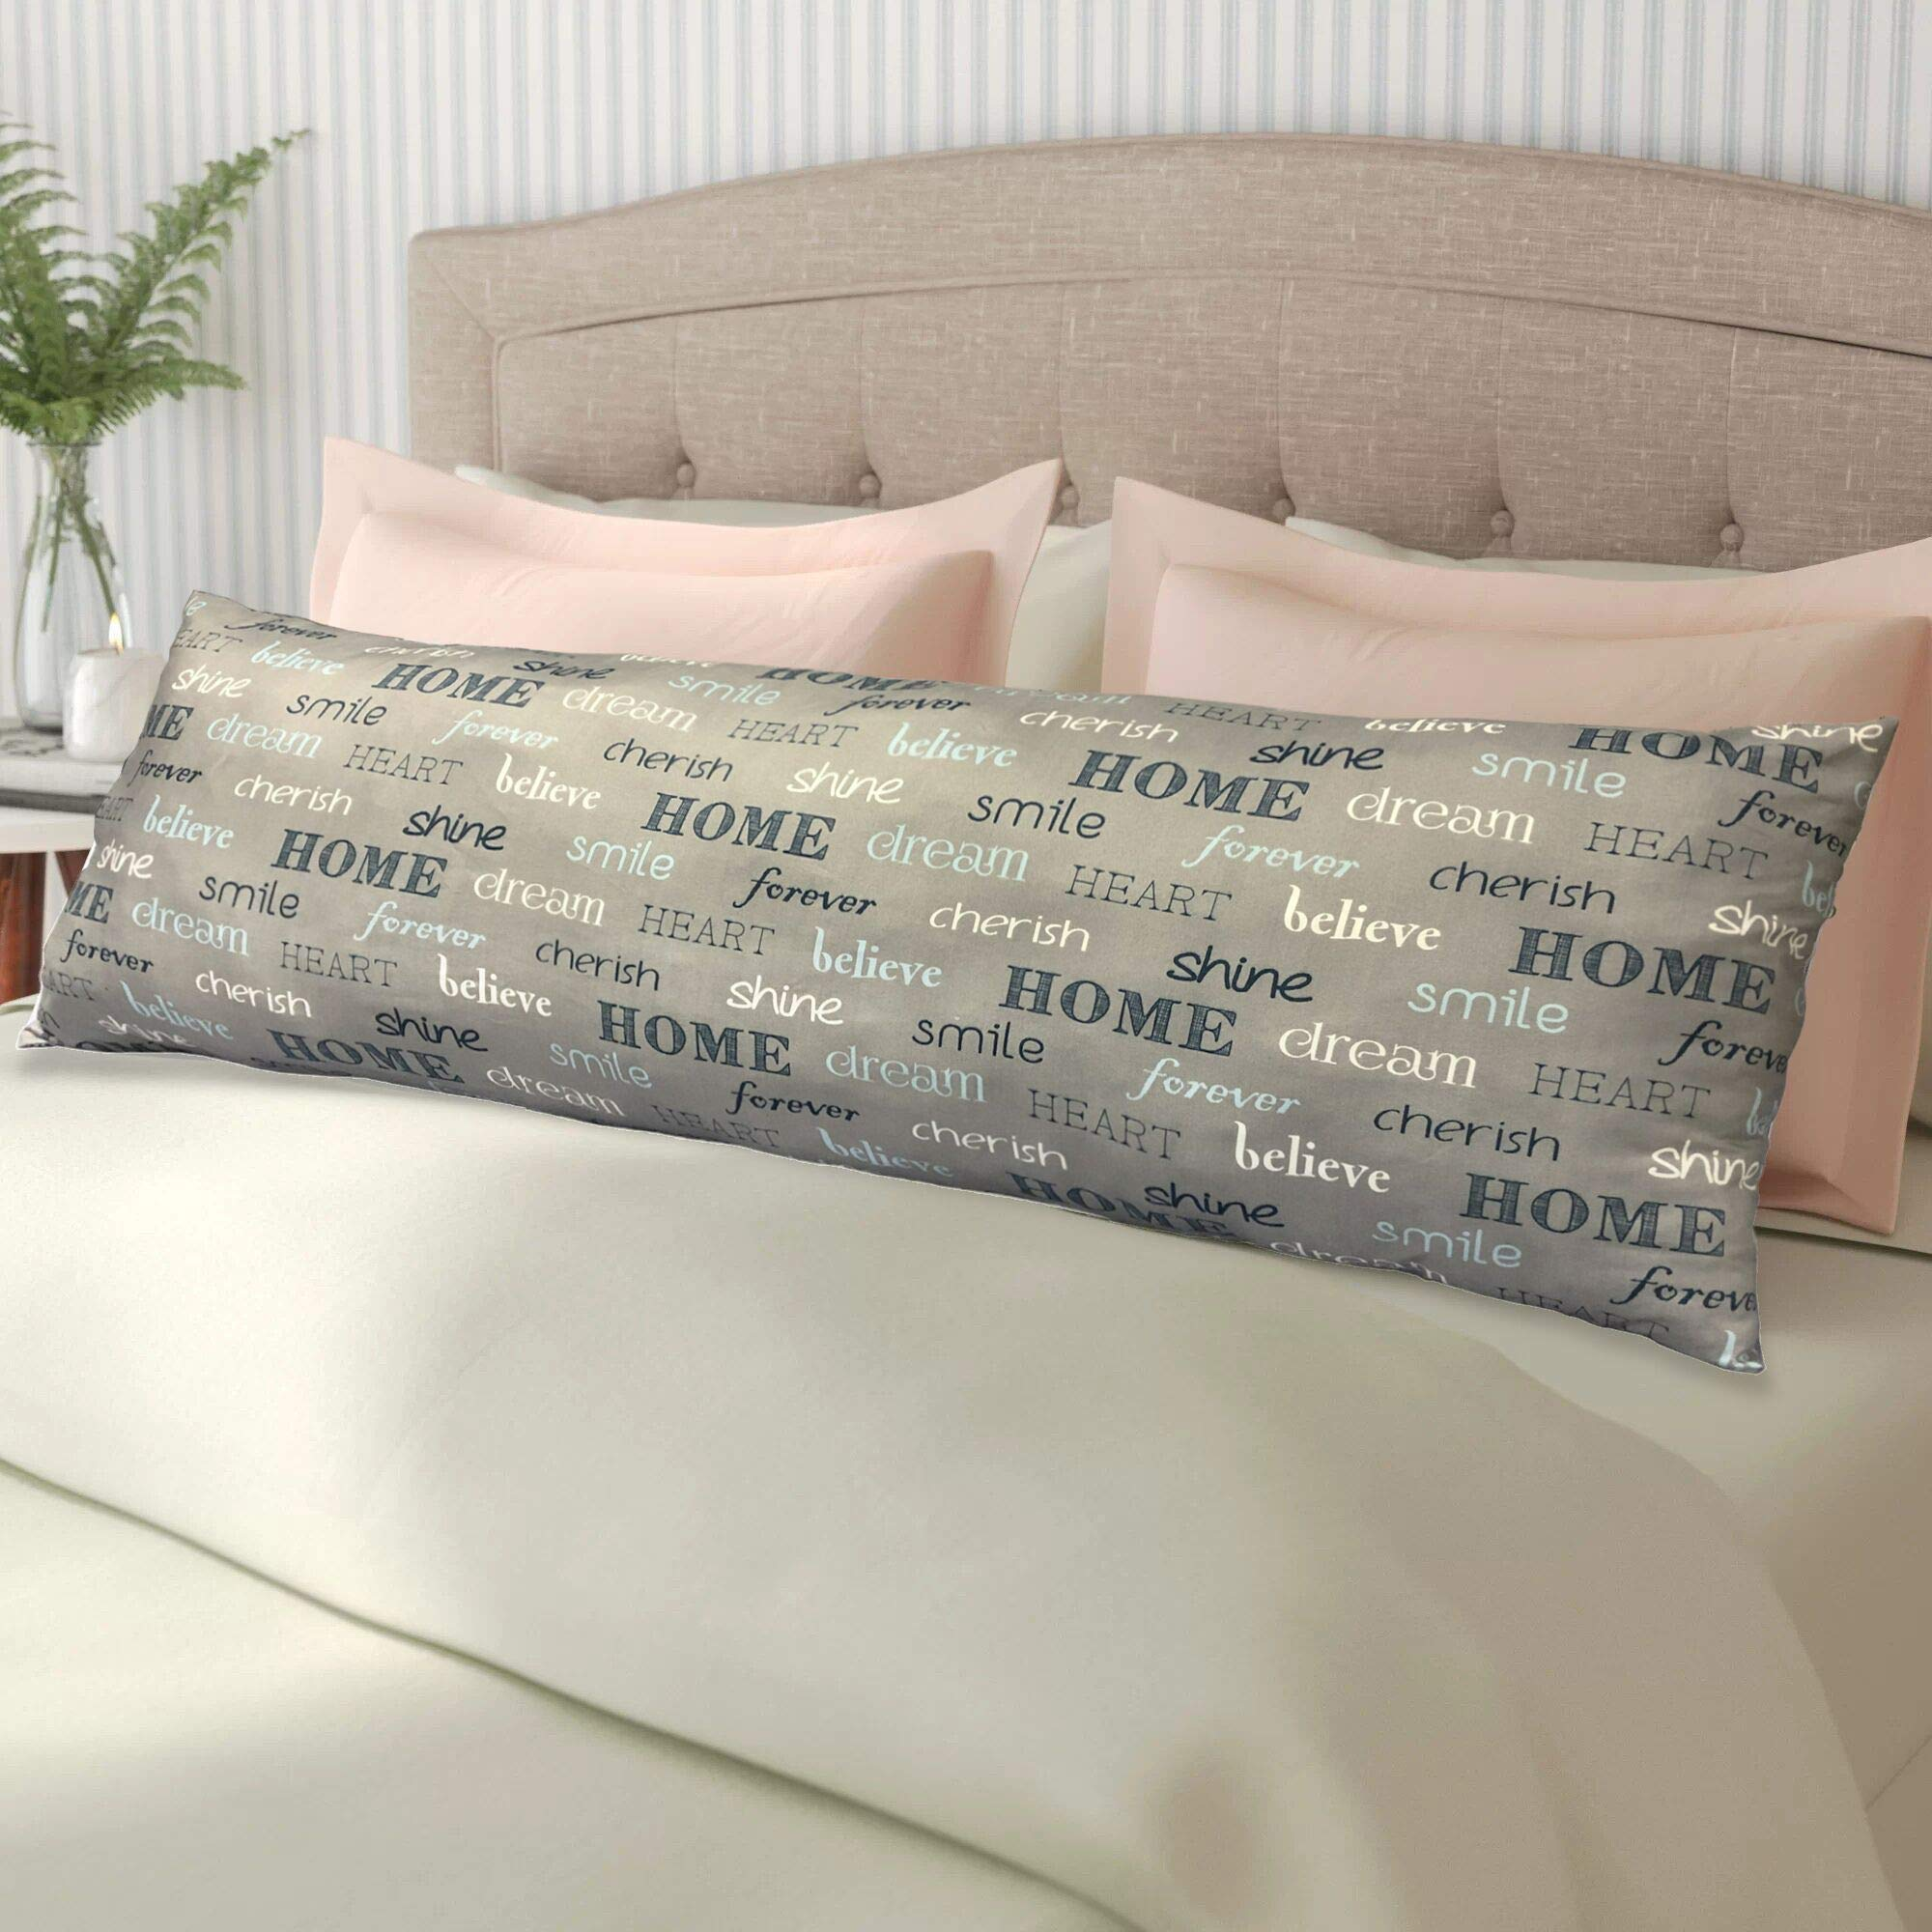 Home Collections Inspire Body Pillow, 18''x48'', Gray